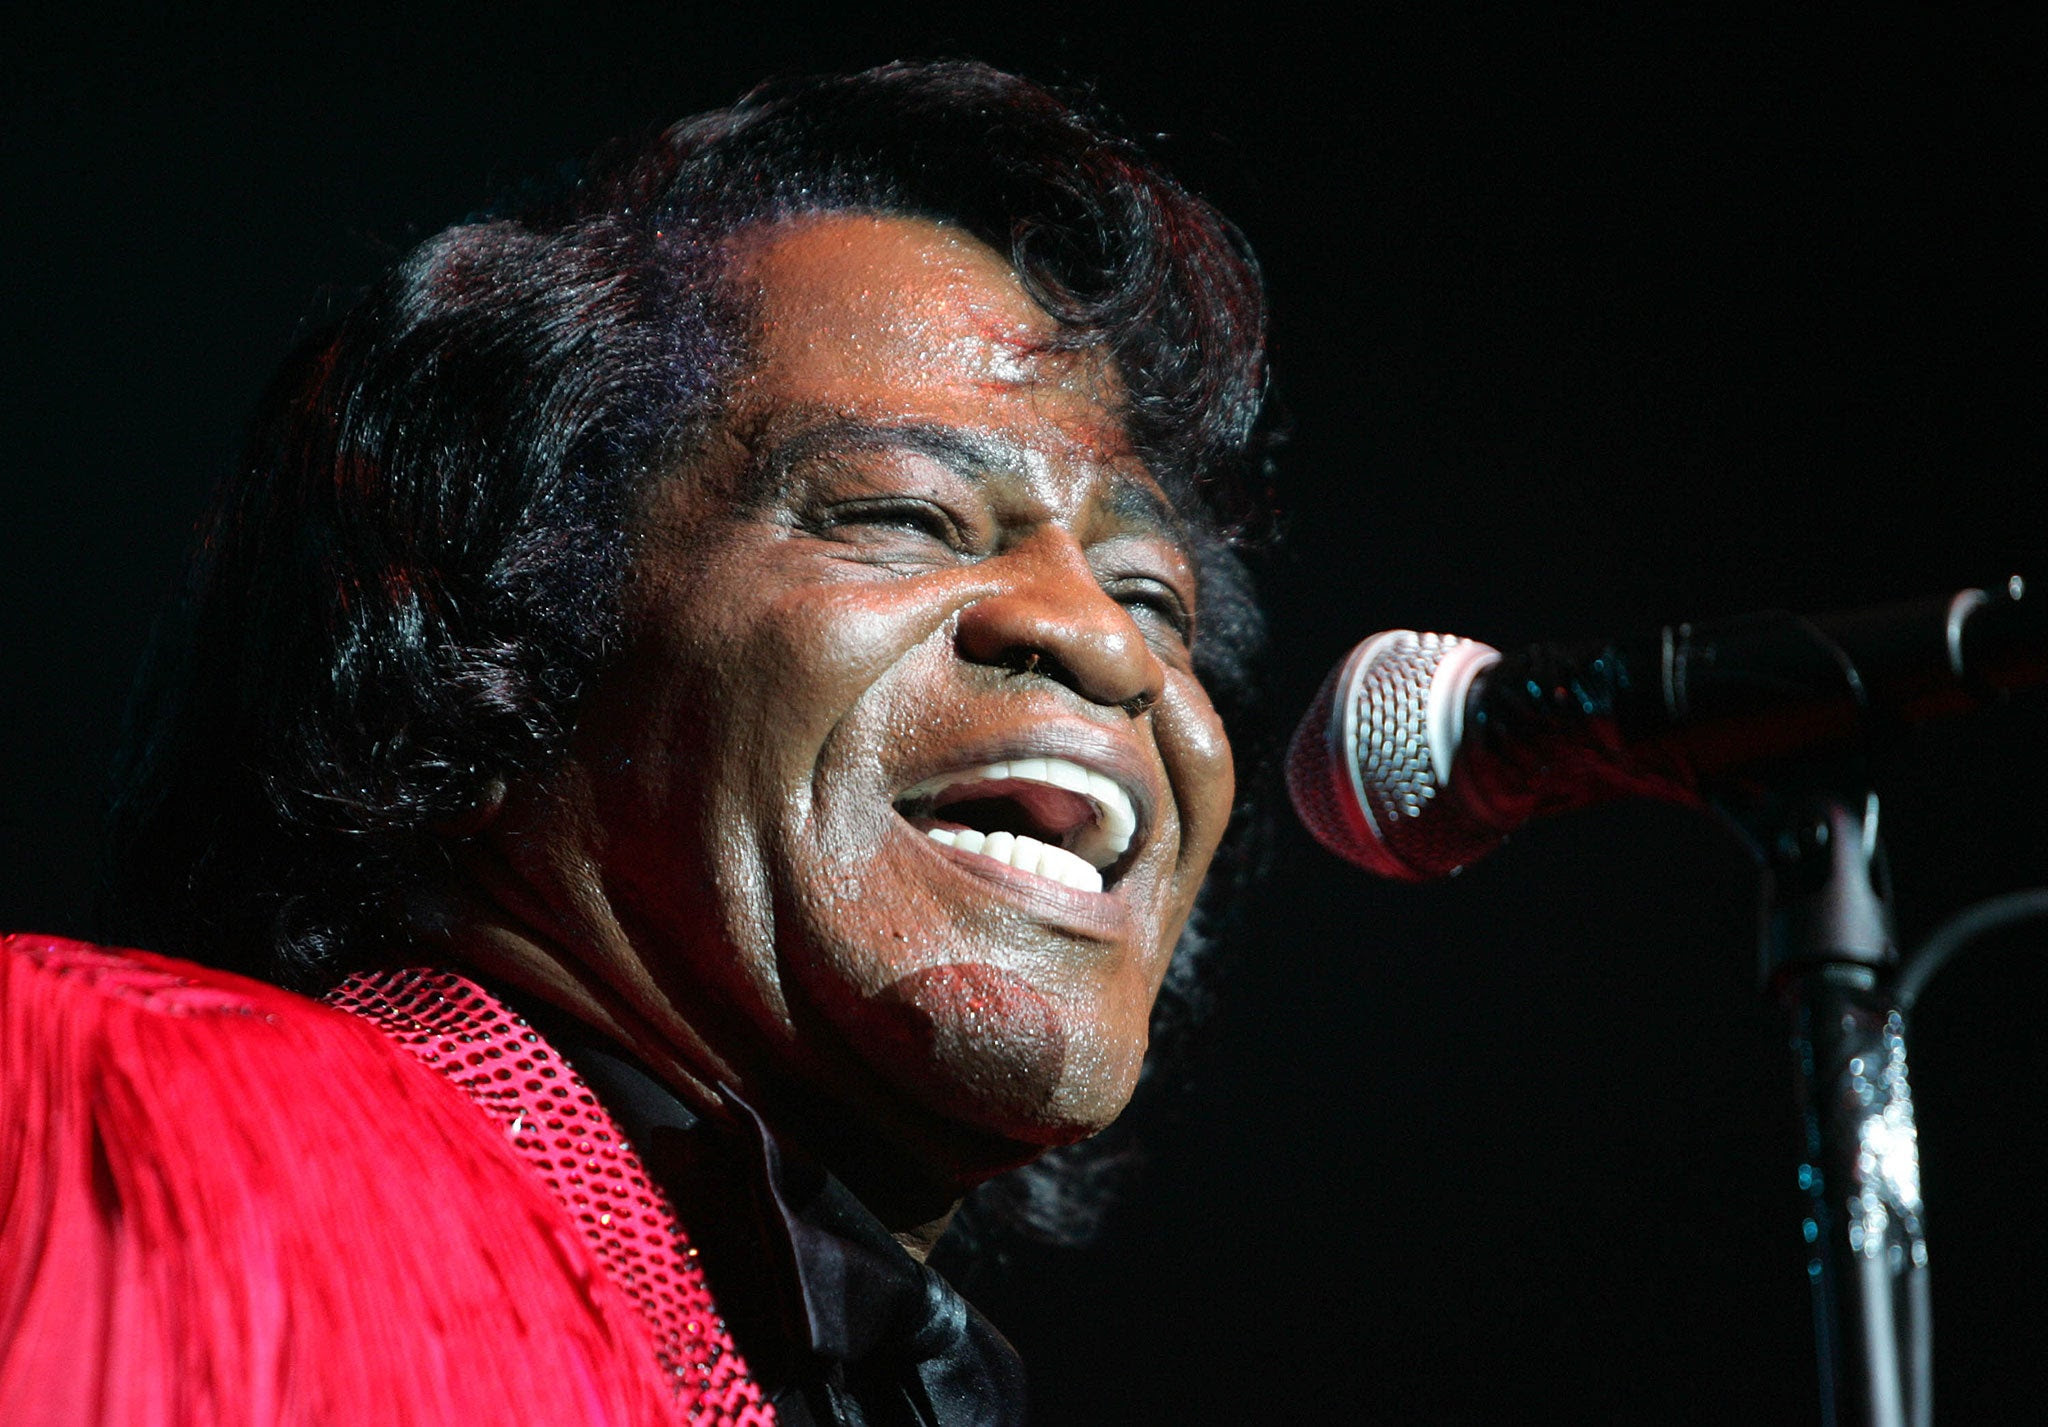 http://static.independent.co.uk/s3fs-public/thumbnails/image/2014/09/21/13/james-brown.jpg